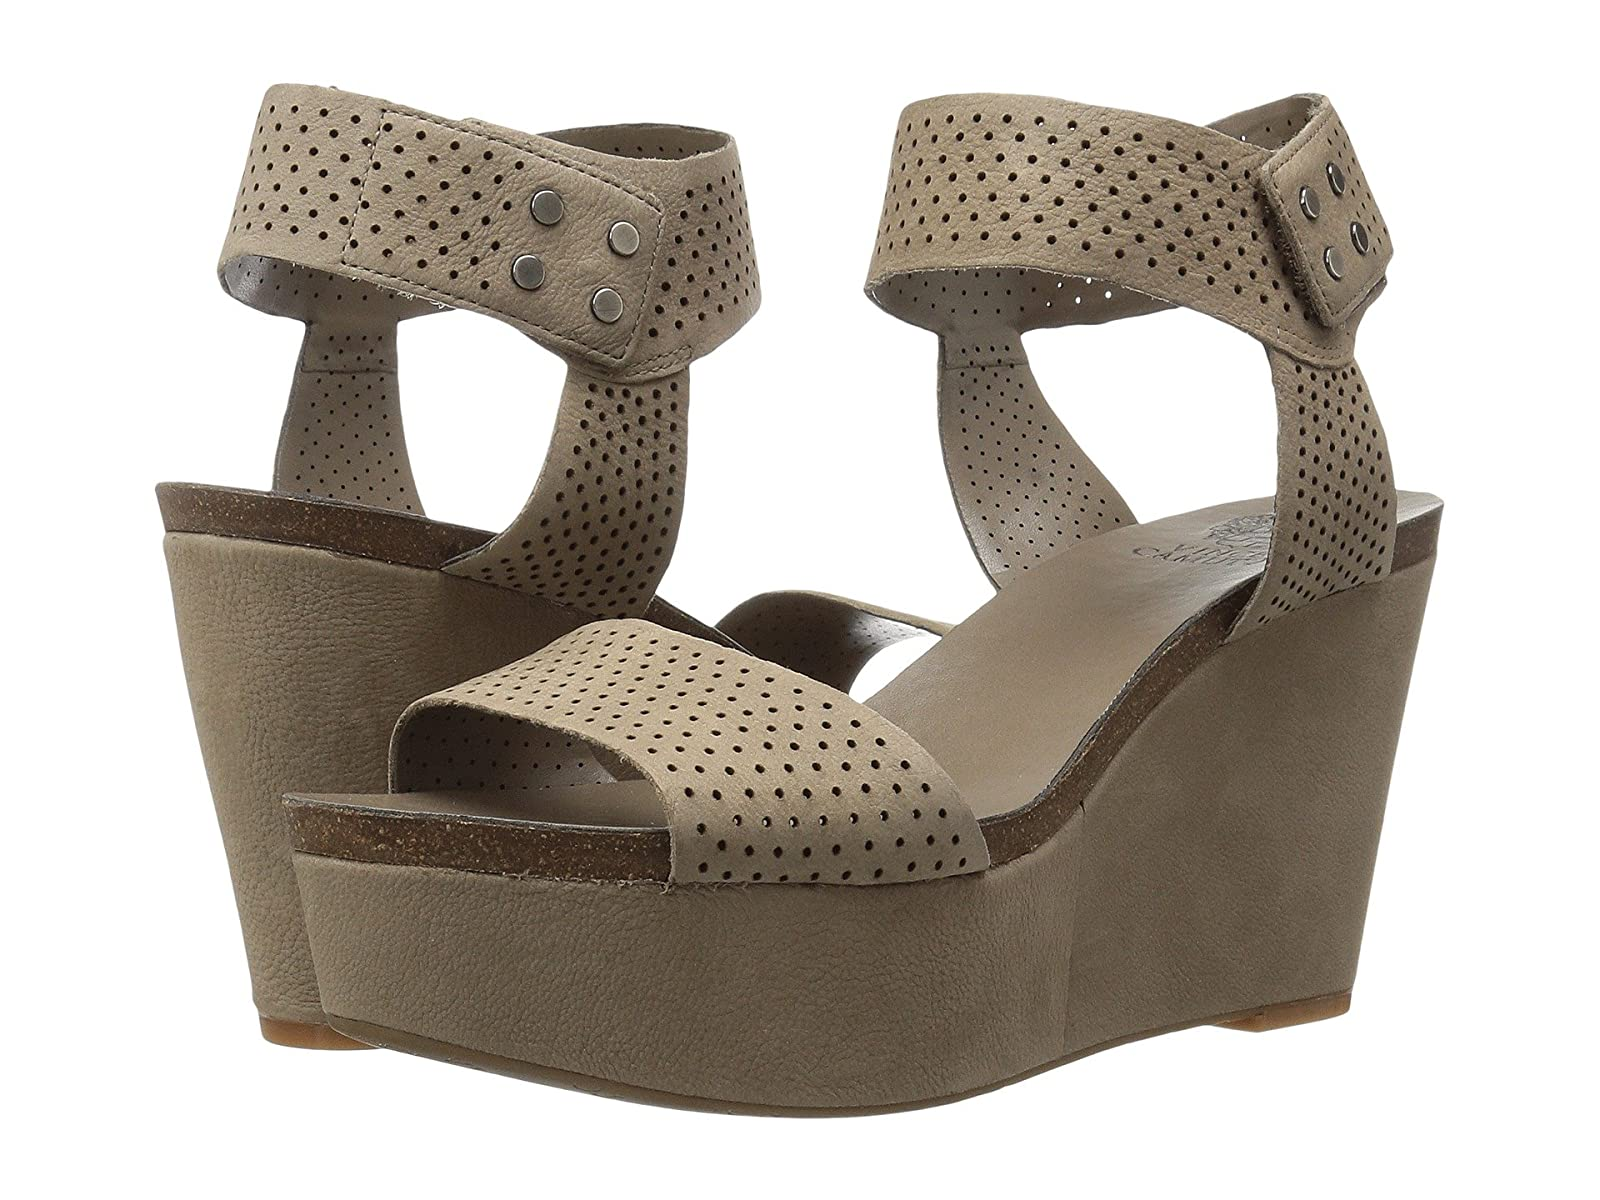 Vince Camuto ValamieCheap and distinctive eye-catching shoes